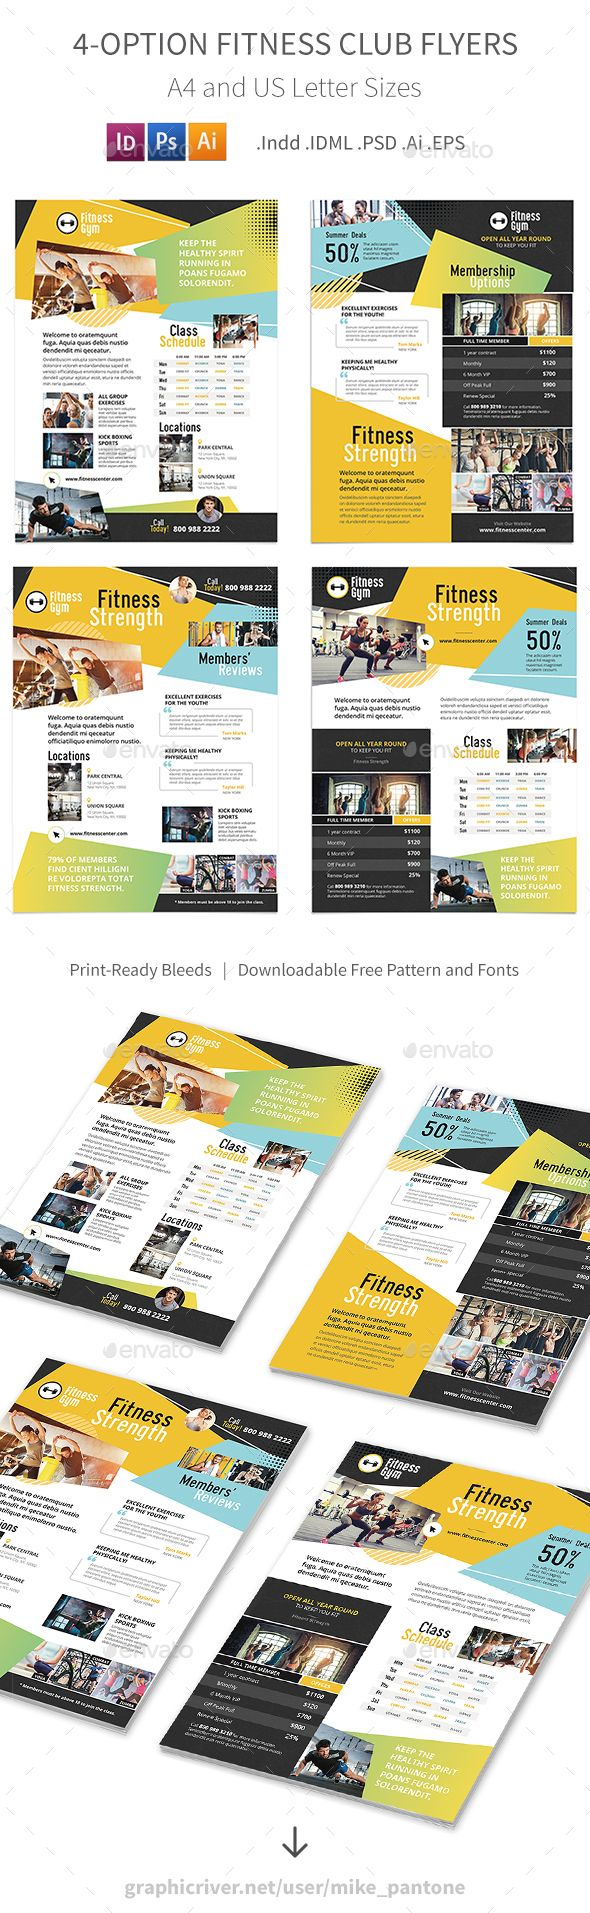 Fitness Club Flyer Templates PSD, Vector EPS, InDesign INDD, AI Illustrator